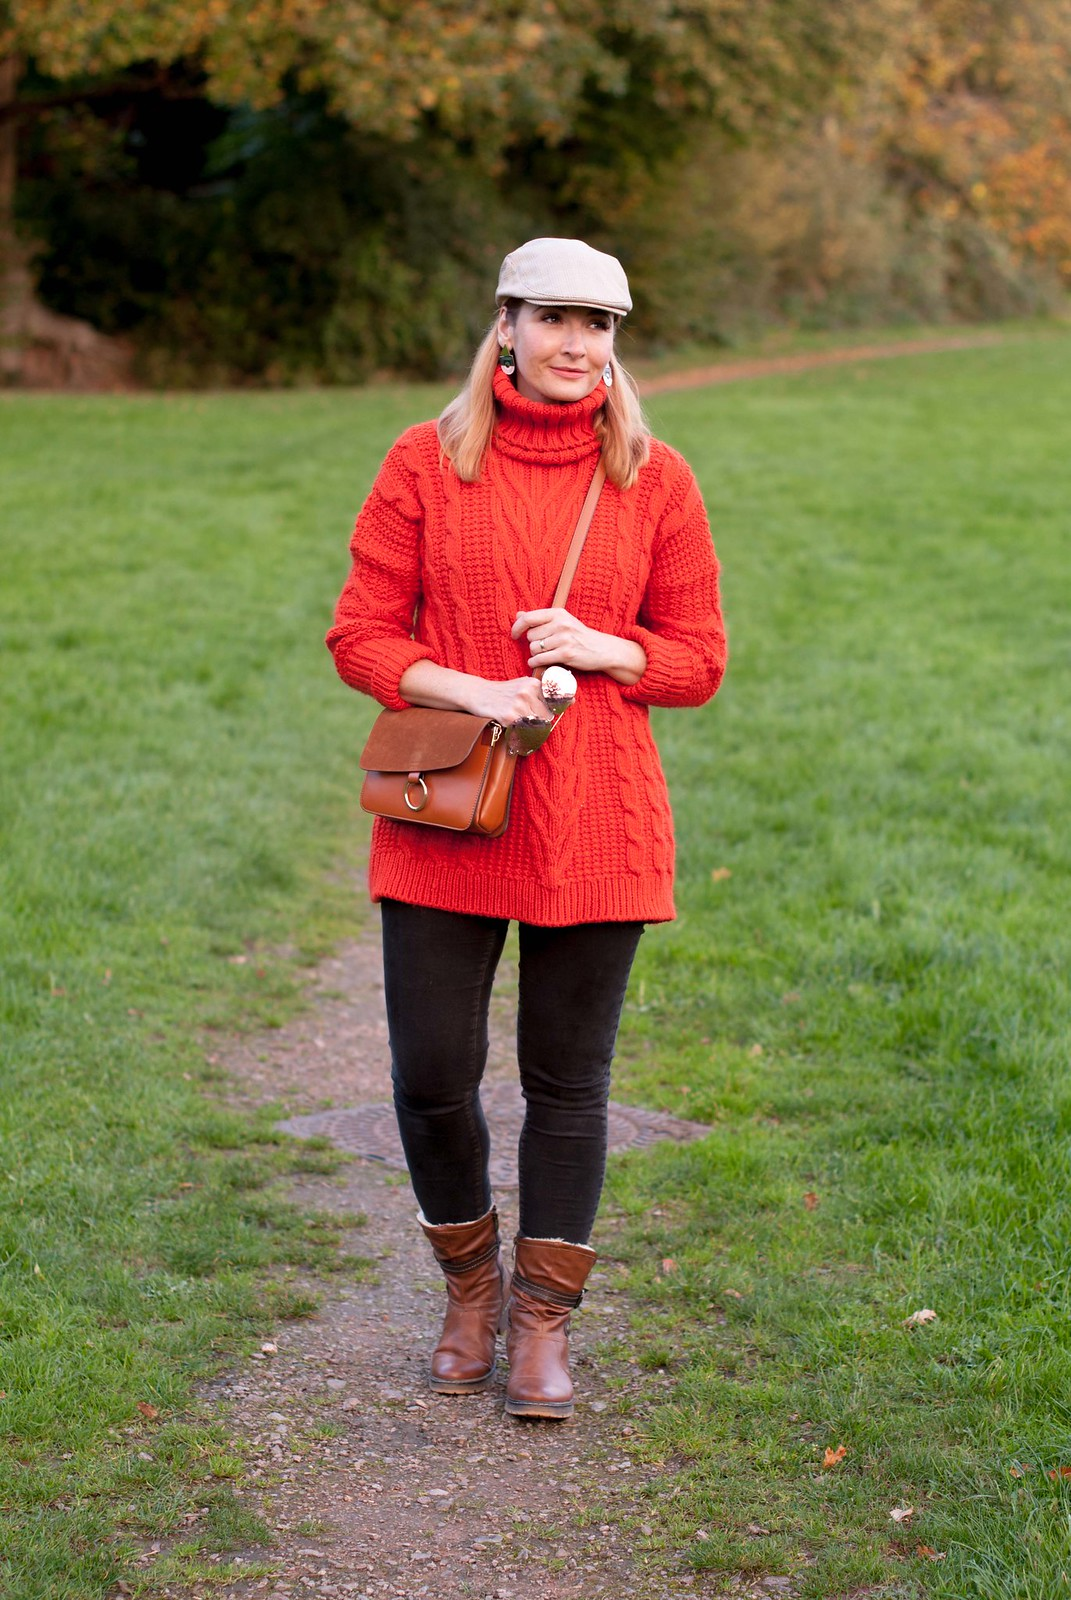 Cozy, comfy autumn fall outfit for walking the dog \ long orange-red roll neck sweater \ skinny jeans \ brown ankle boots \ flat cap | Not Dressed As Lamb, over 40 style